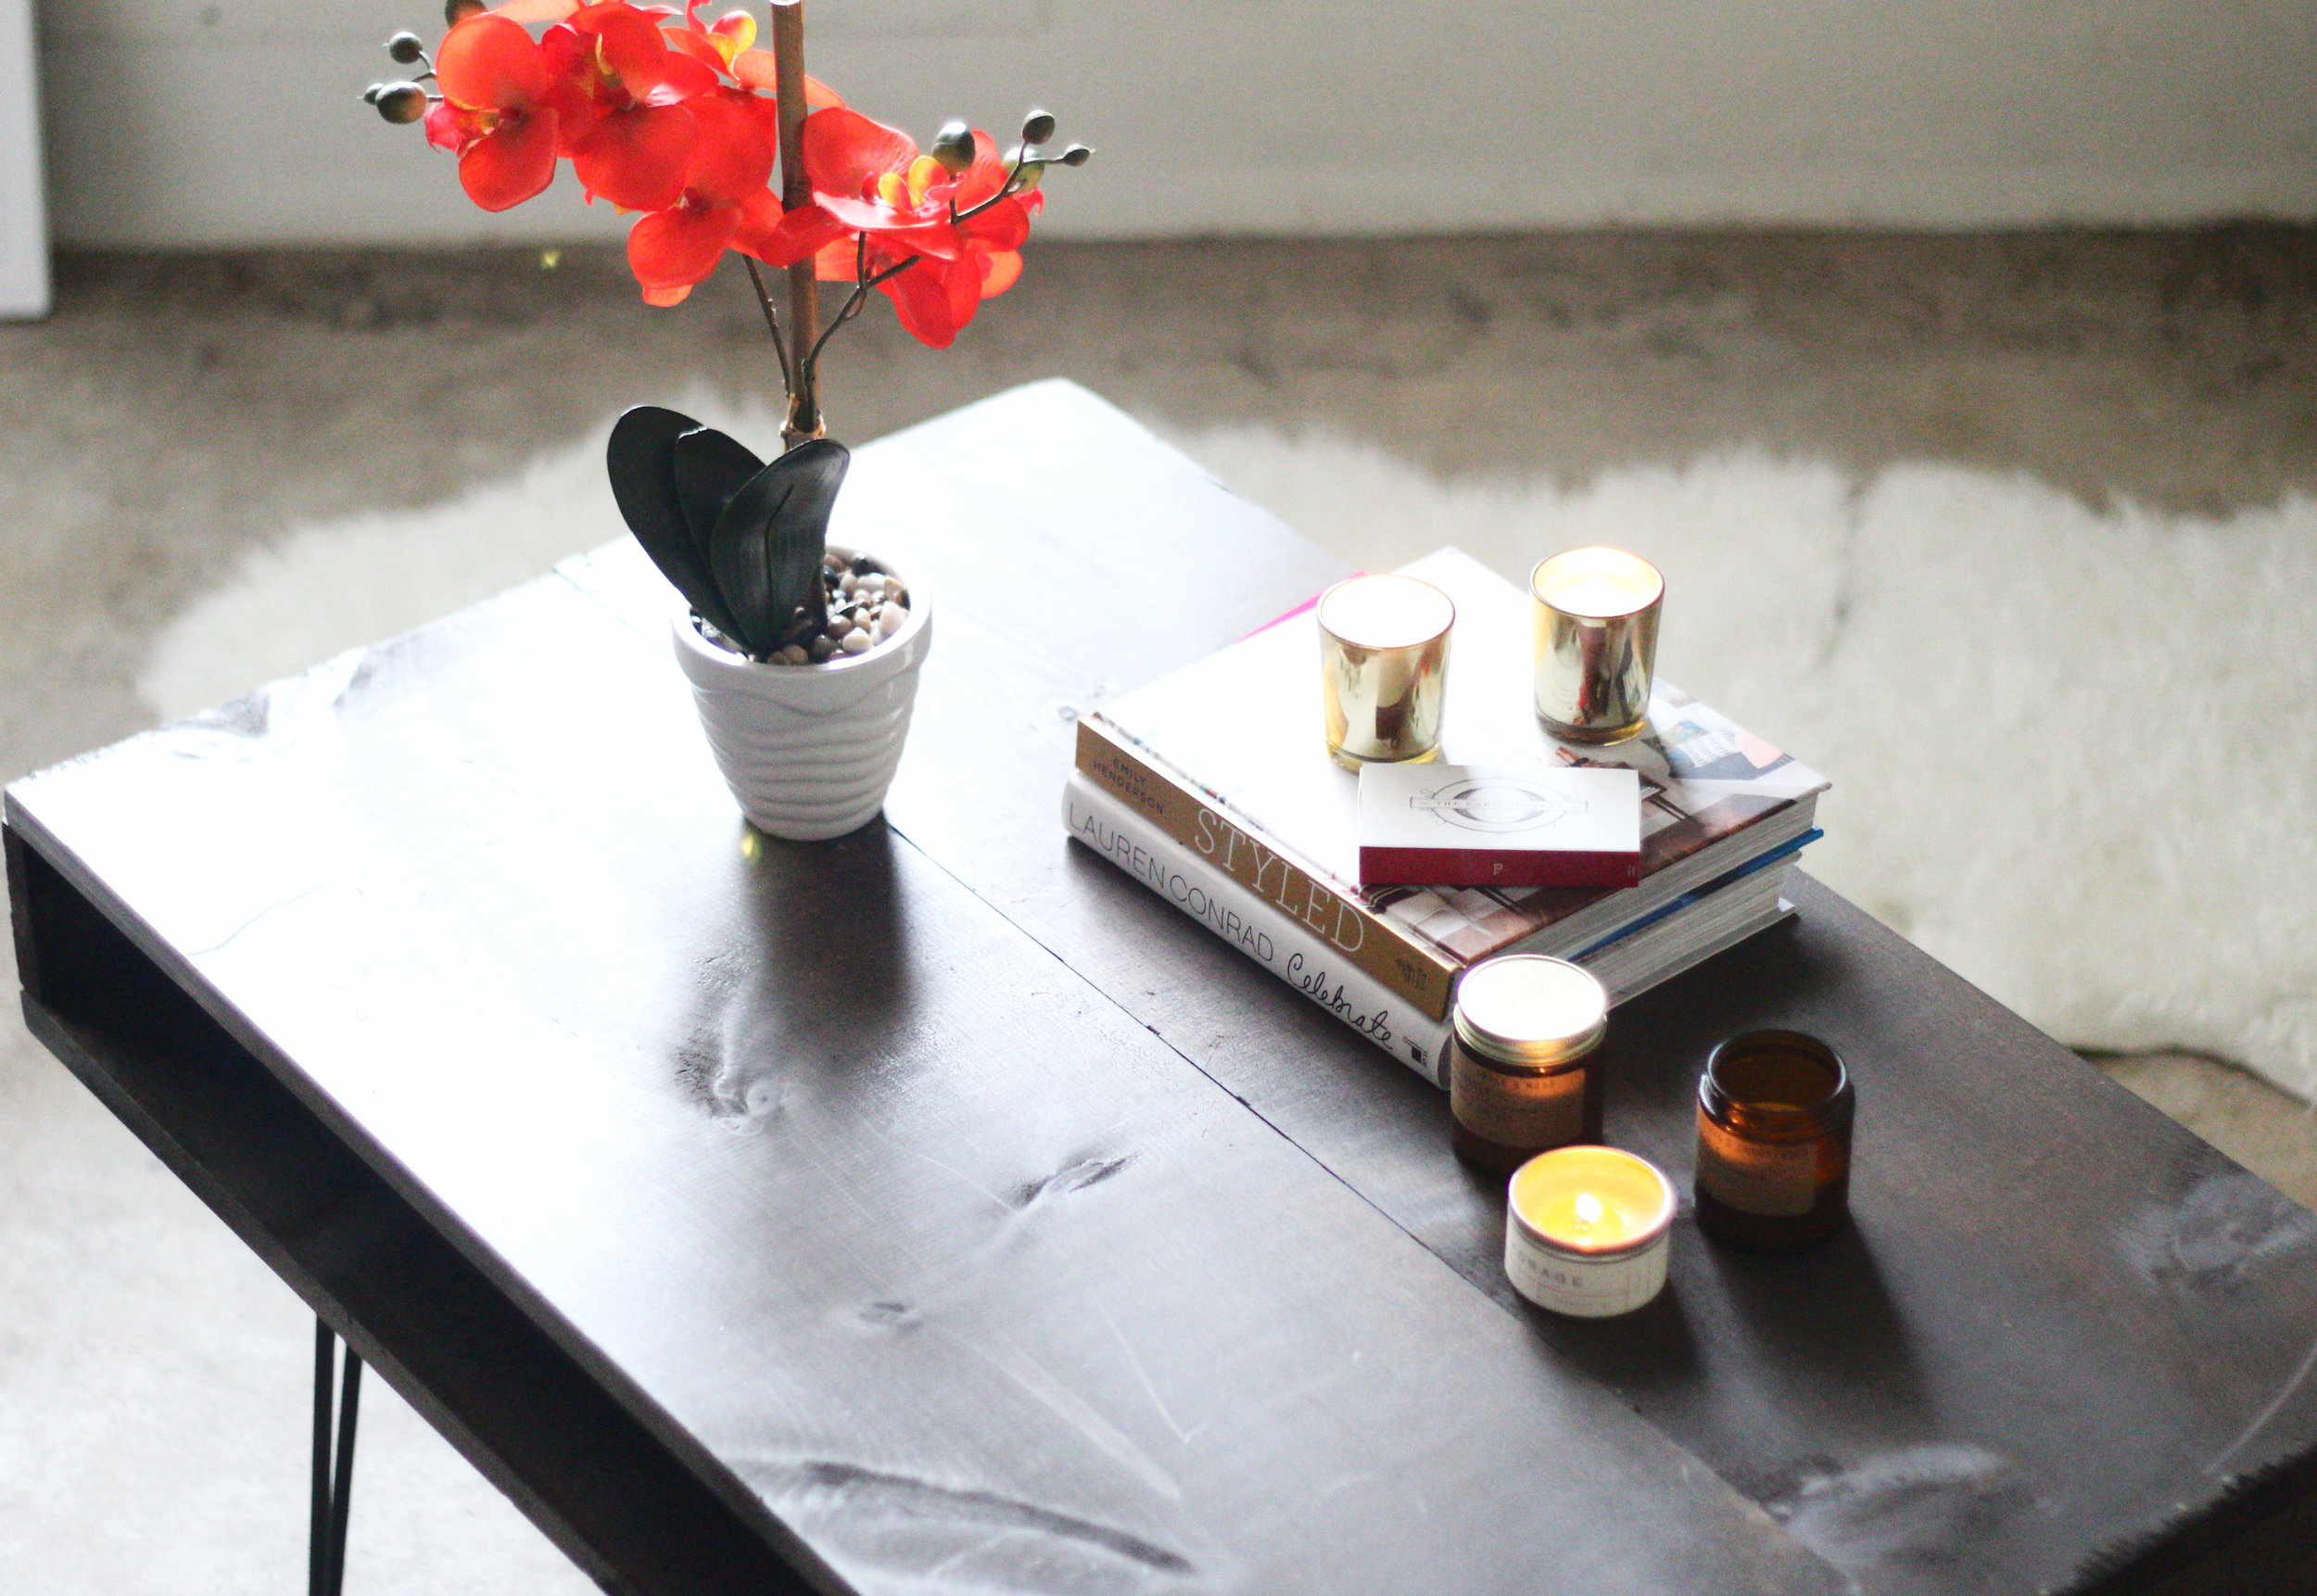 west elm inspired mid century coffee table DIY project